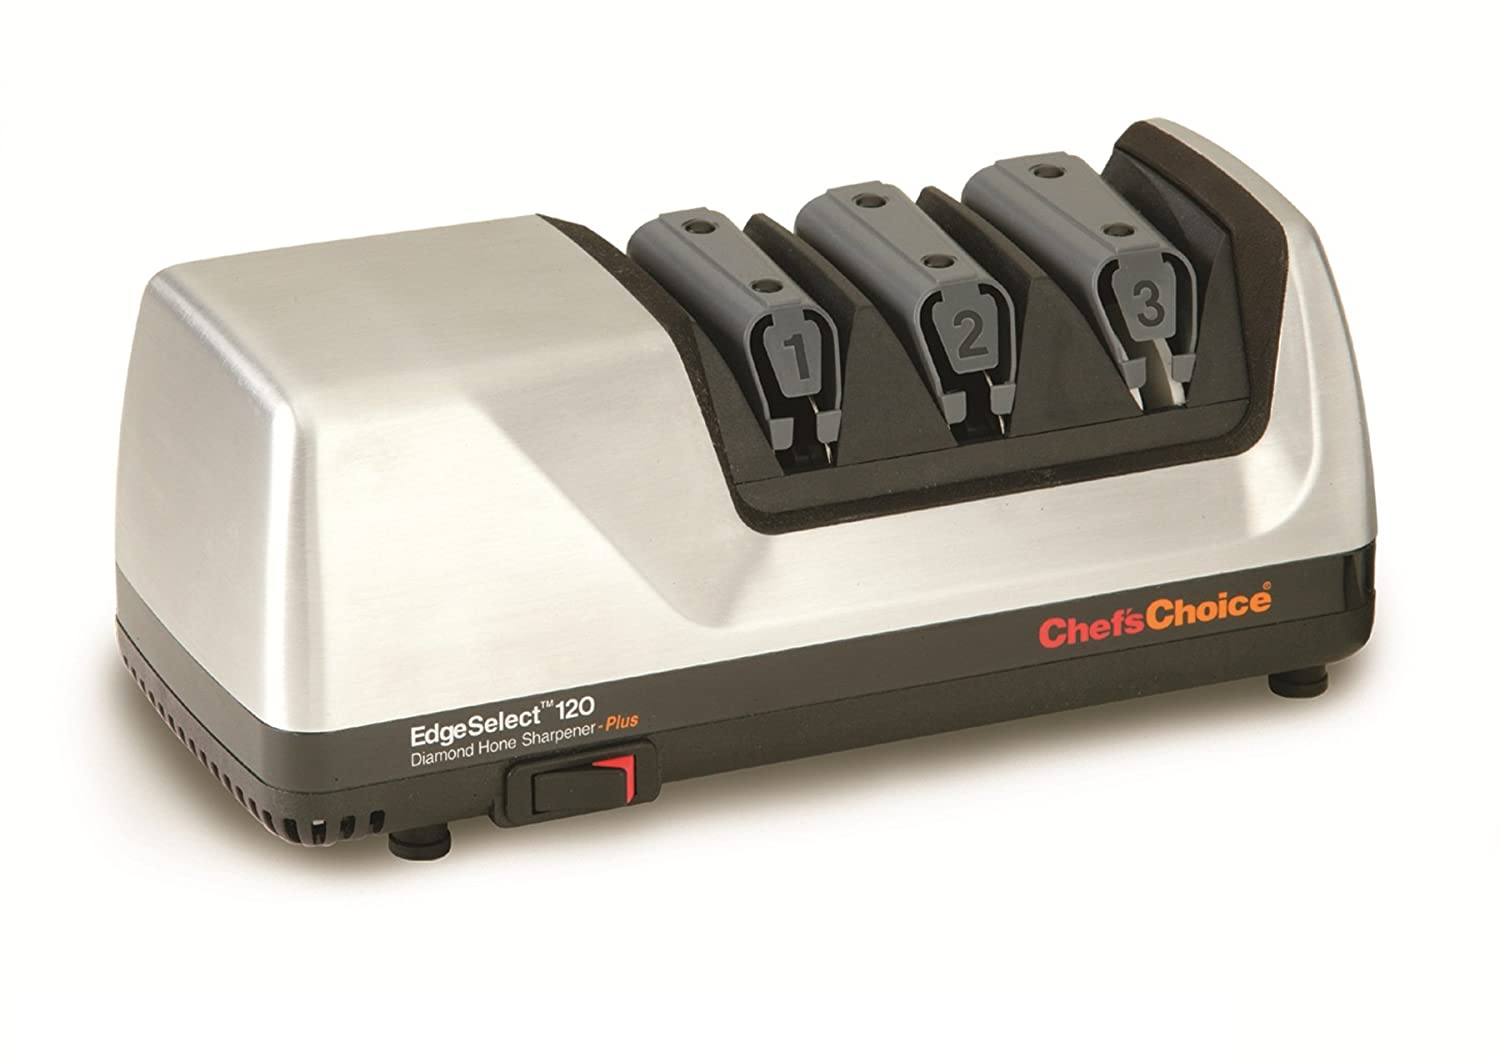 Chef sChoice 120 EdgeSelect Diamond Hone Professional Knife Sharpener for Straight and Serrated Knives with Precision Angle Control, 3-Stage, made in USA, Brushed Metal